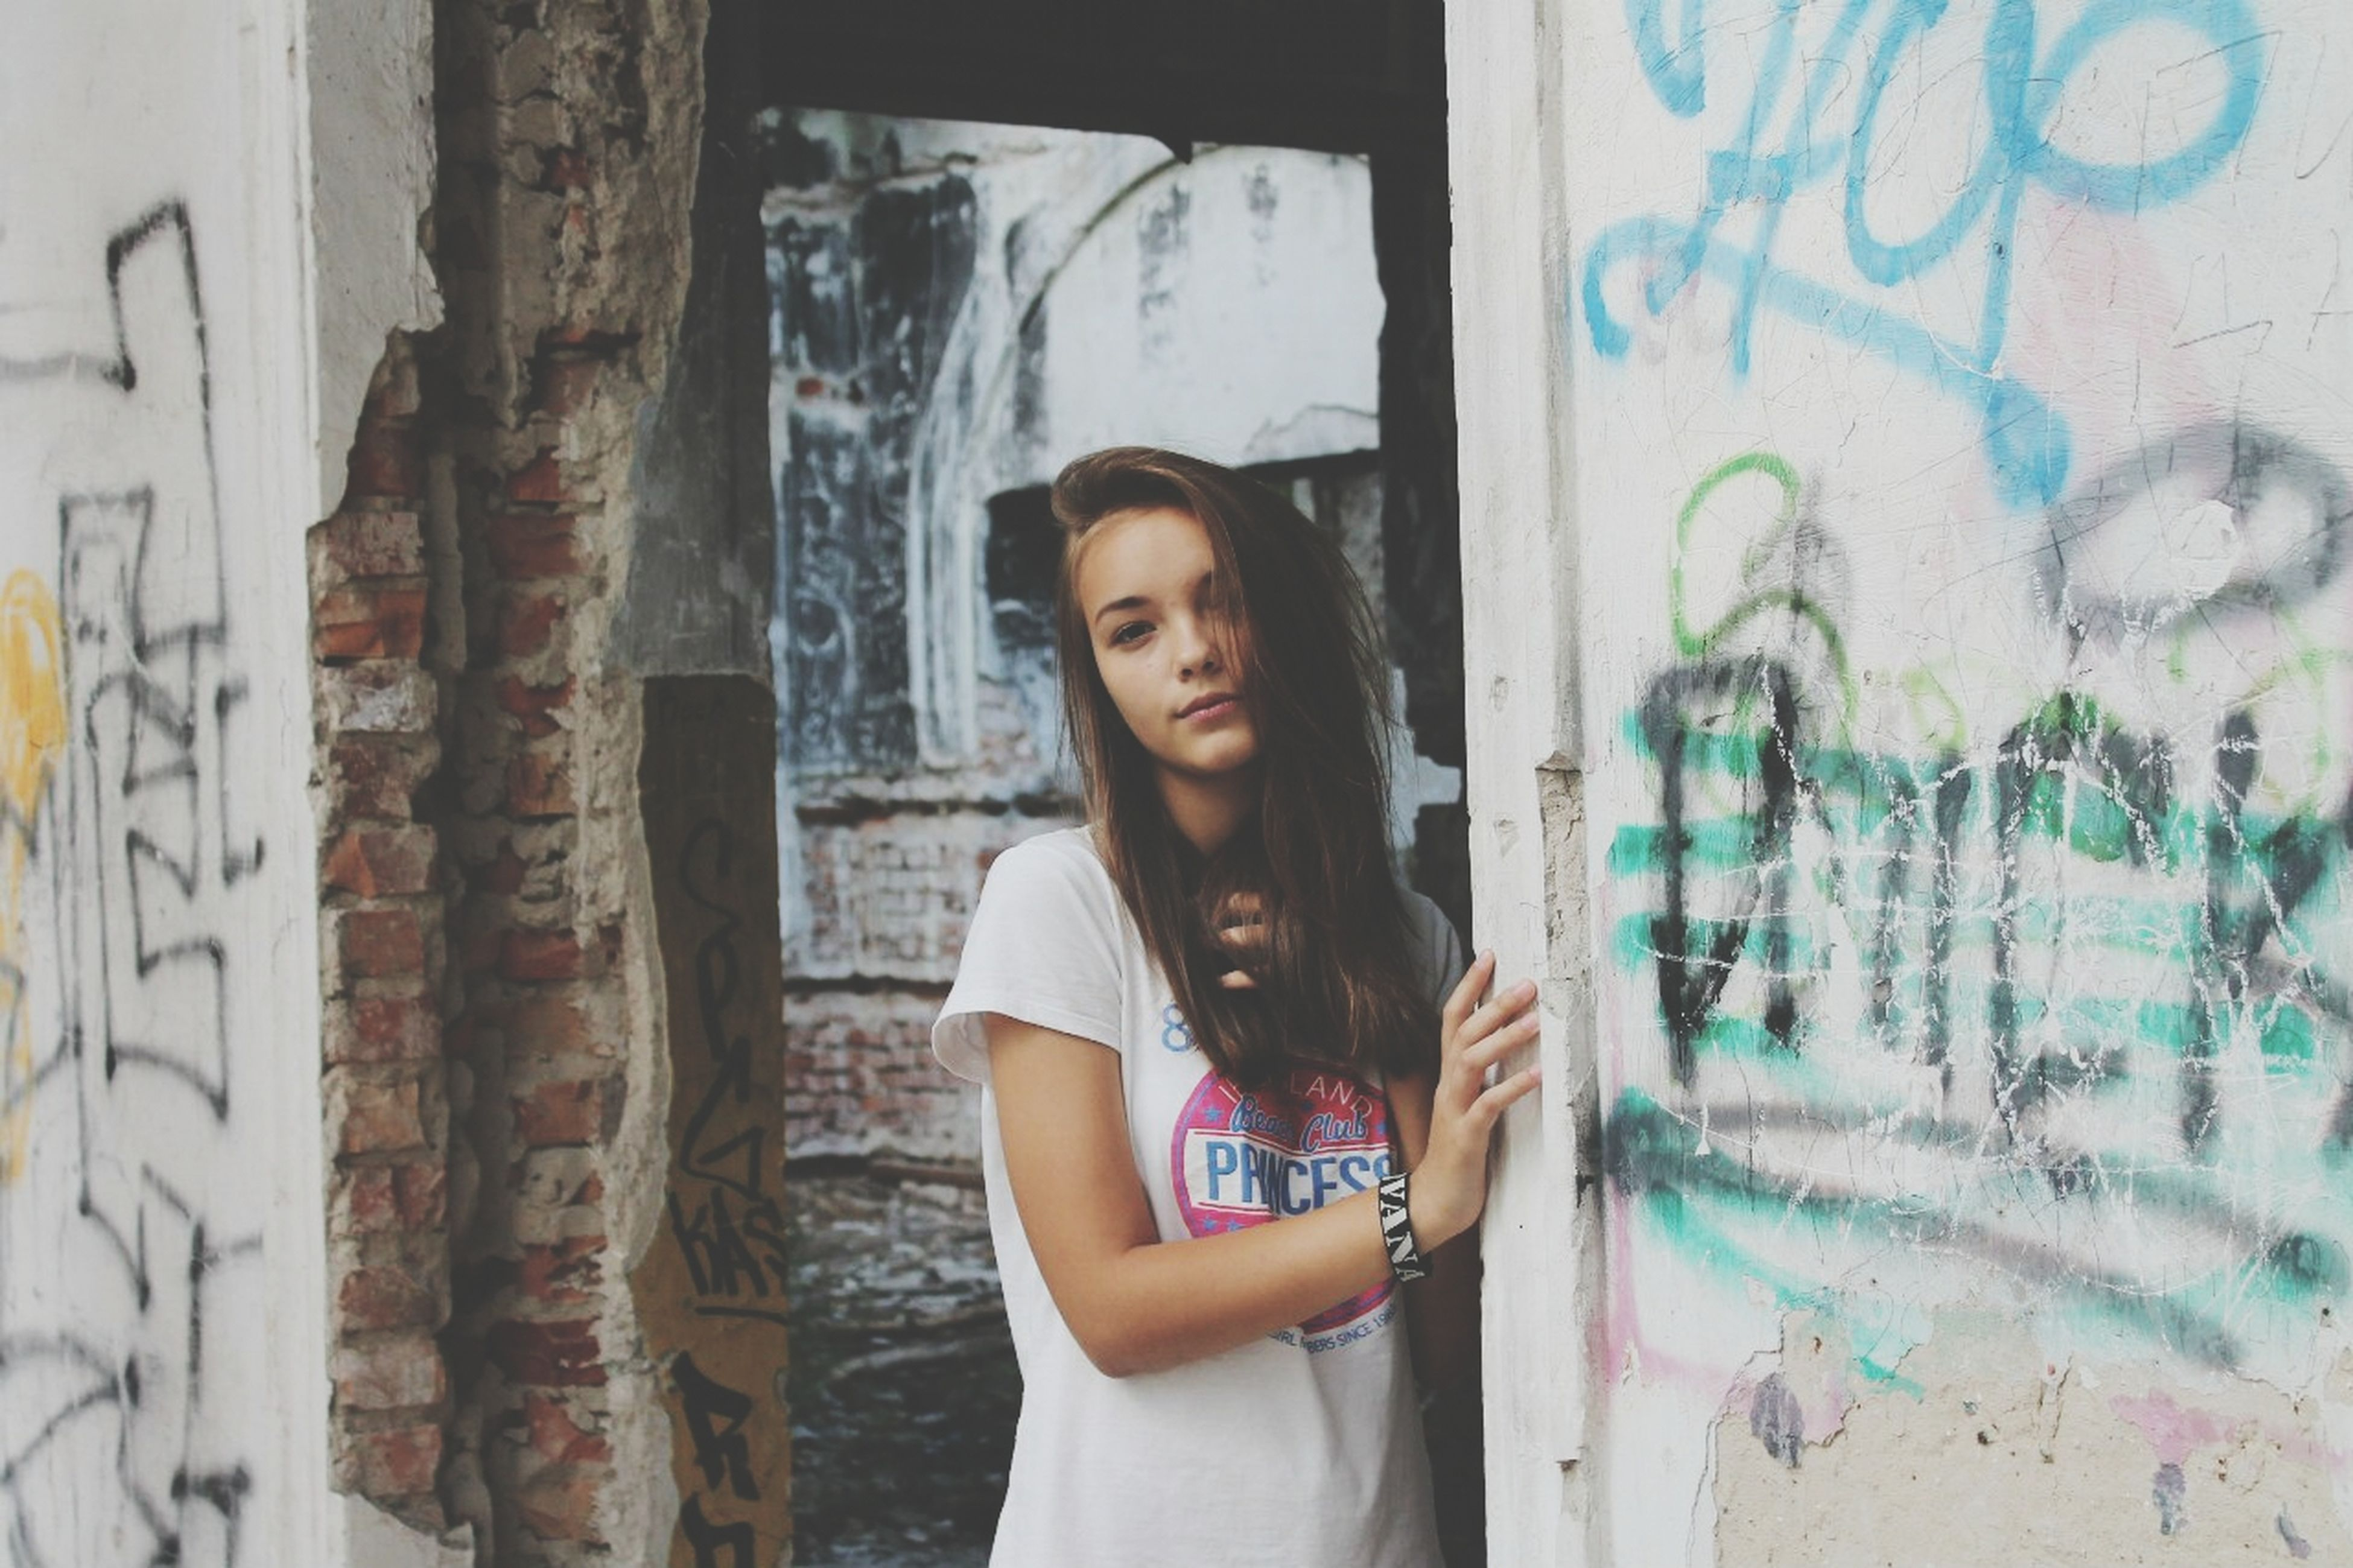 wall - building feature, young adult, graffiti, lifestyles, person, looking at camera, indoors, young women, front view, architecture, casual clothing, portrait, built structure, leisure activity, wall, standing, waist up, art